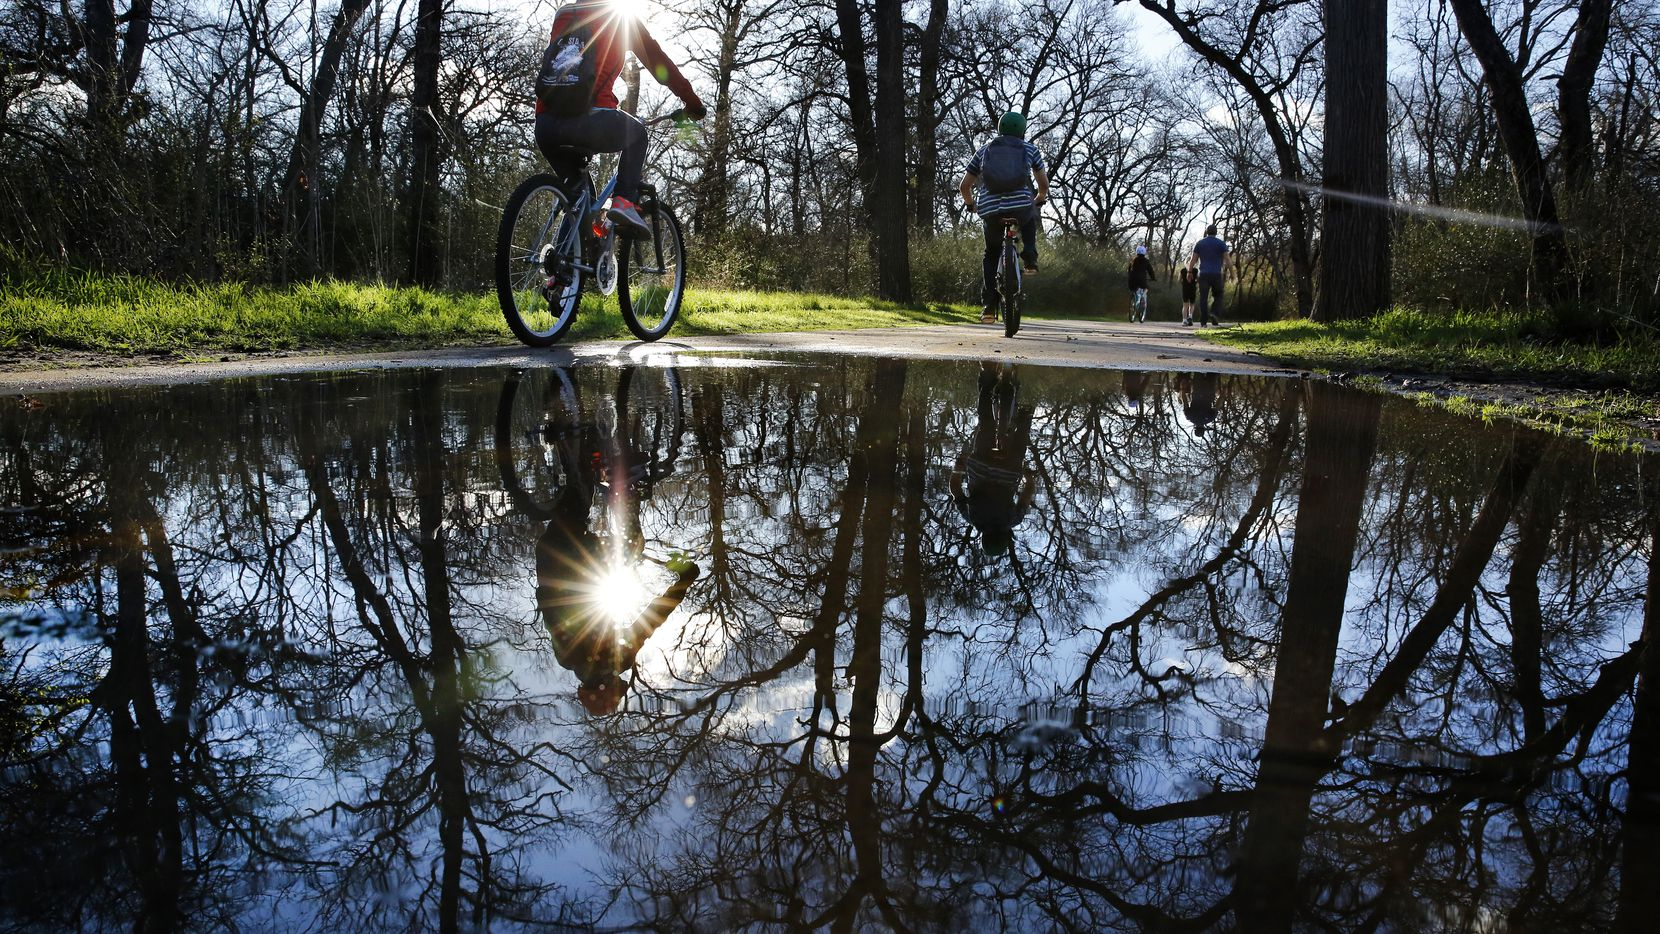 After overnight rains, cyclists and walkers navigate the water puddles along the paths of River Legacy Parks in Arlington